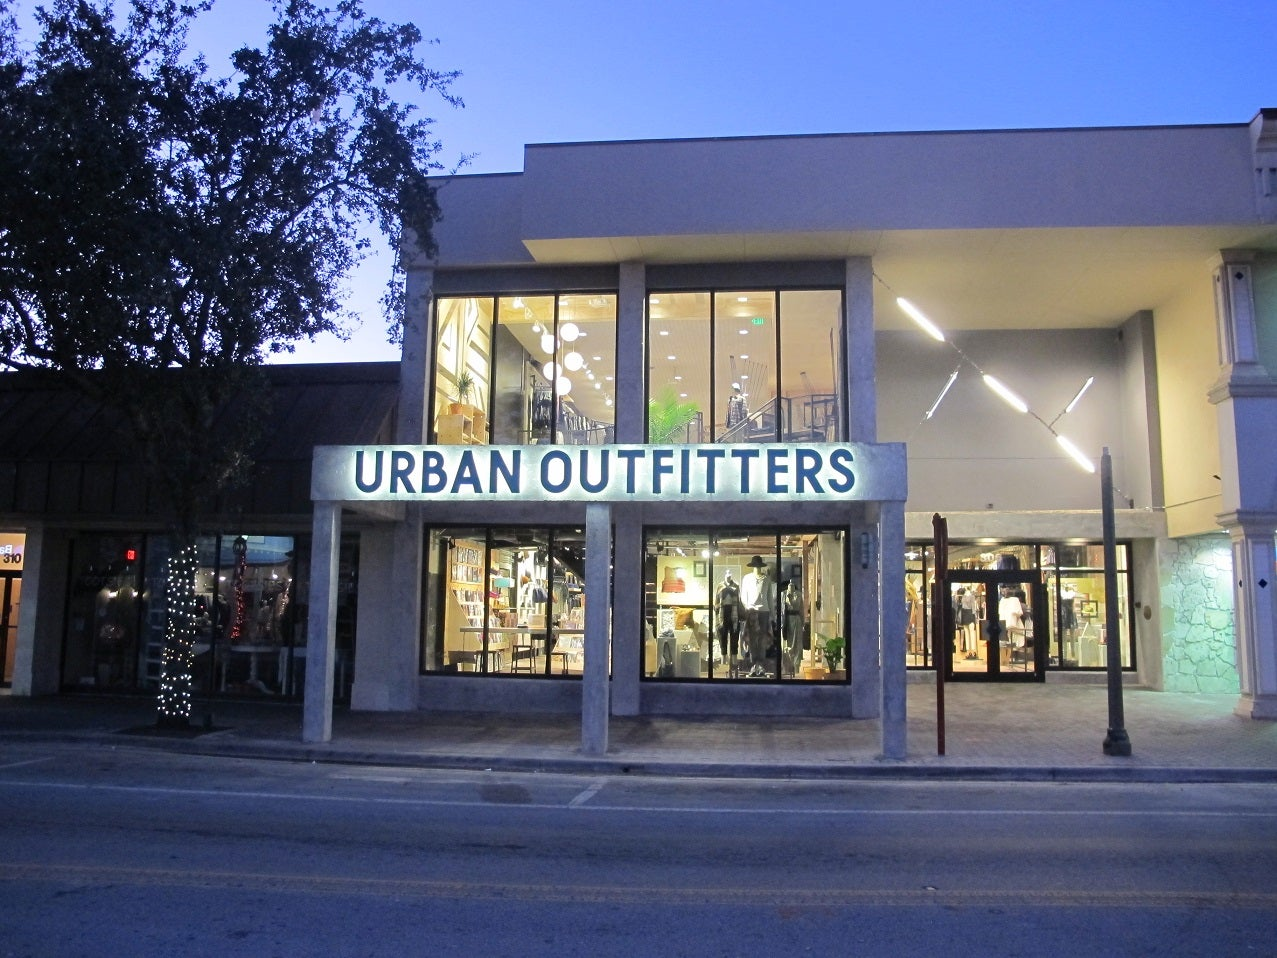 Urban Outfitters store as seen from front on empty street at dusk.